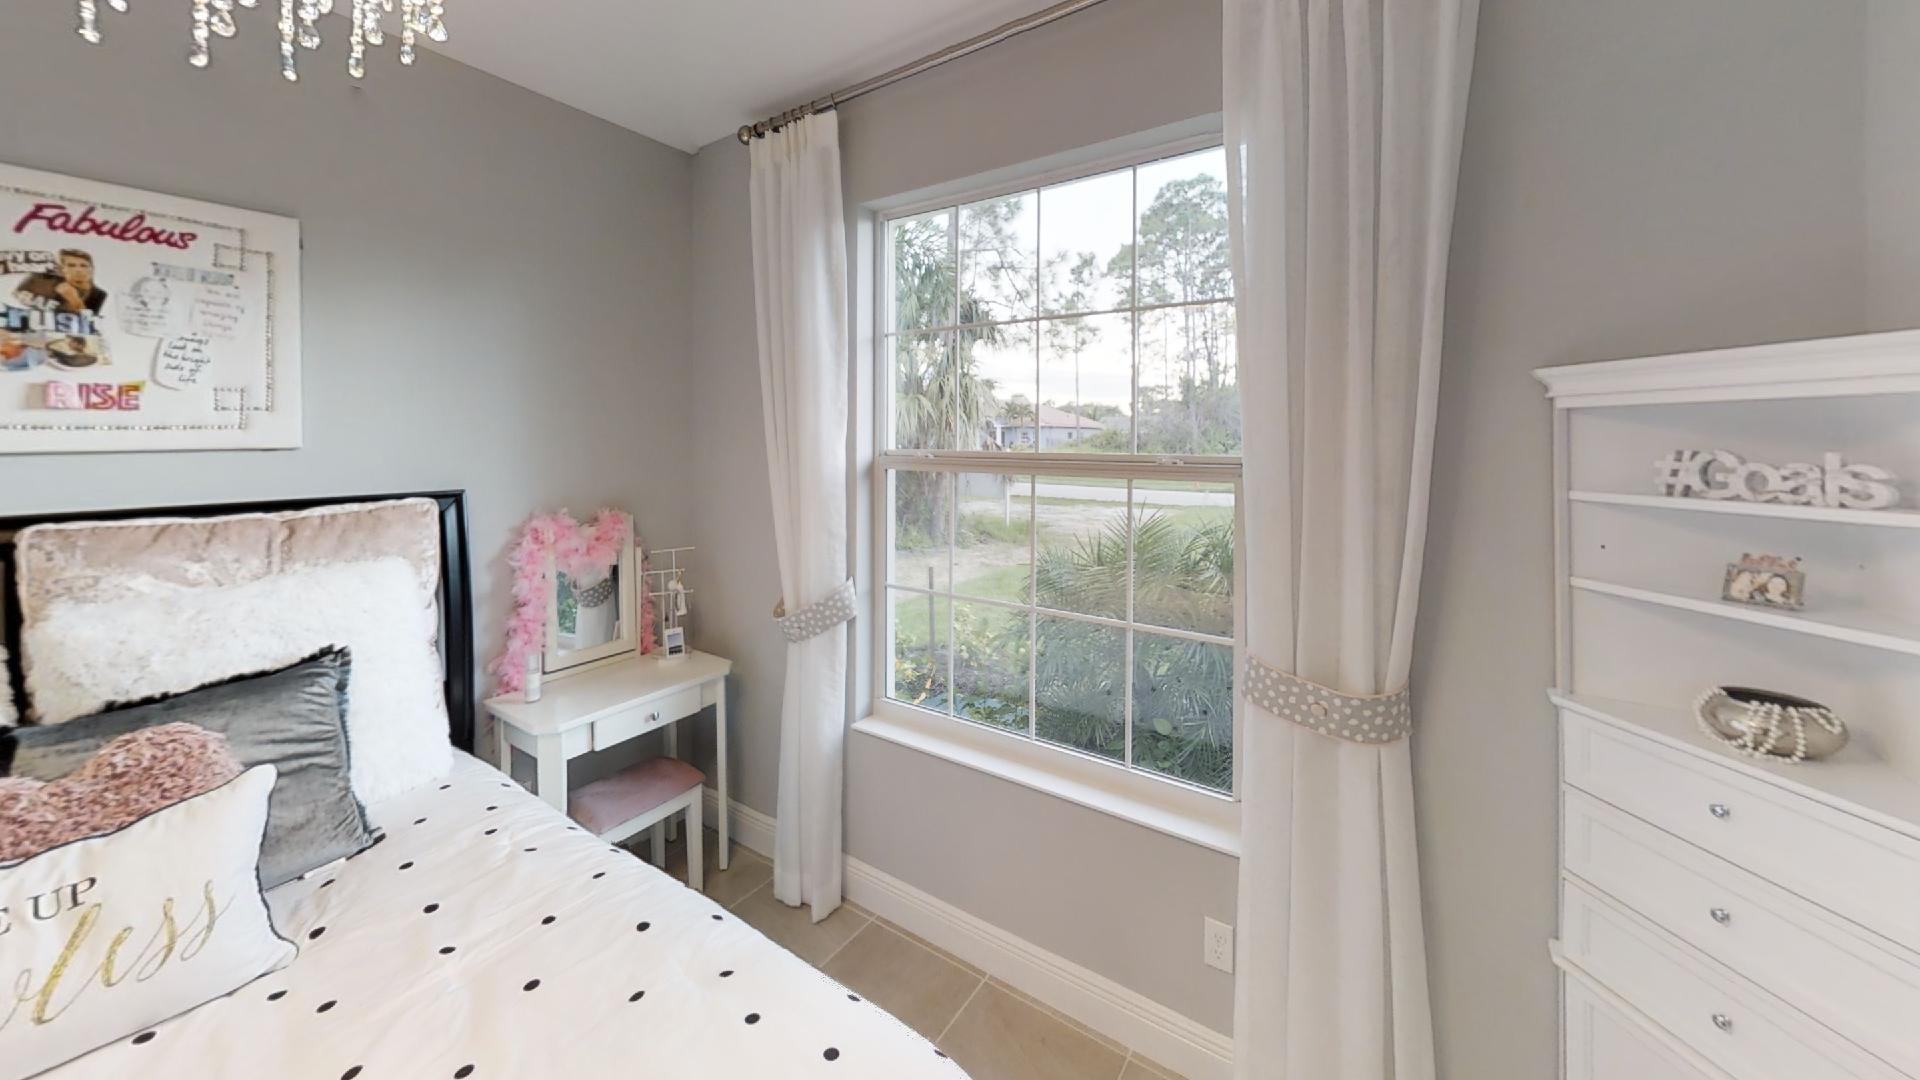 PORT ST LUCIE-SECTION 17- BLK 1429 LOT 12 (MAP 43/24N) (OR 899-975)